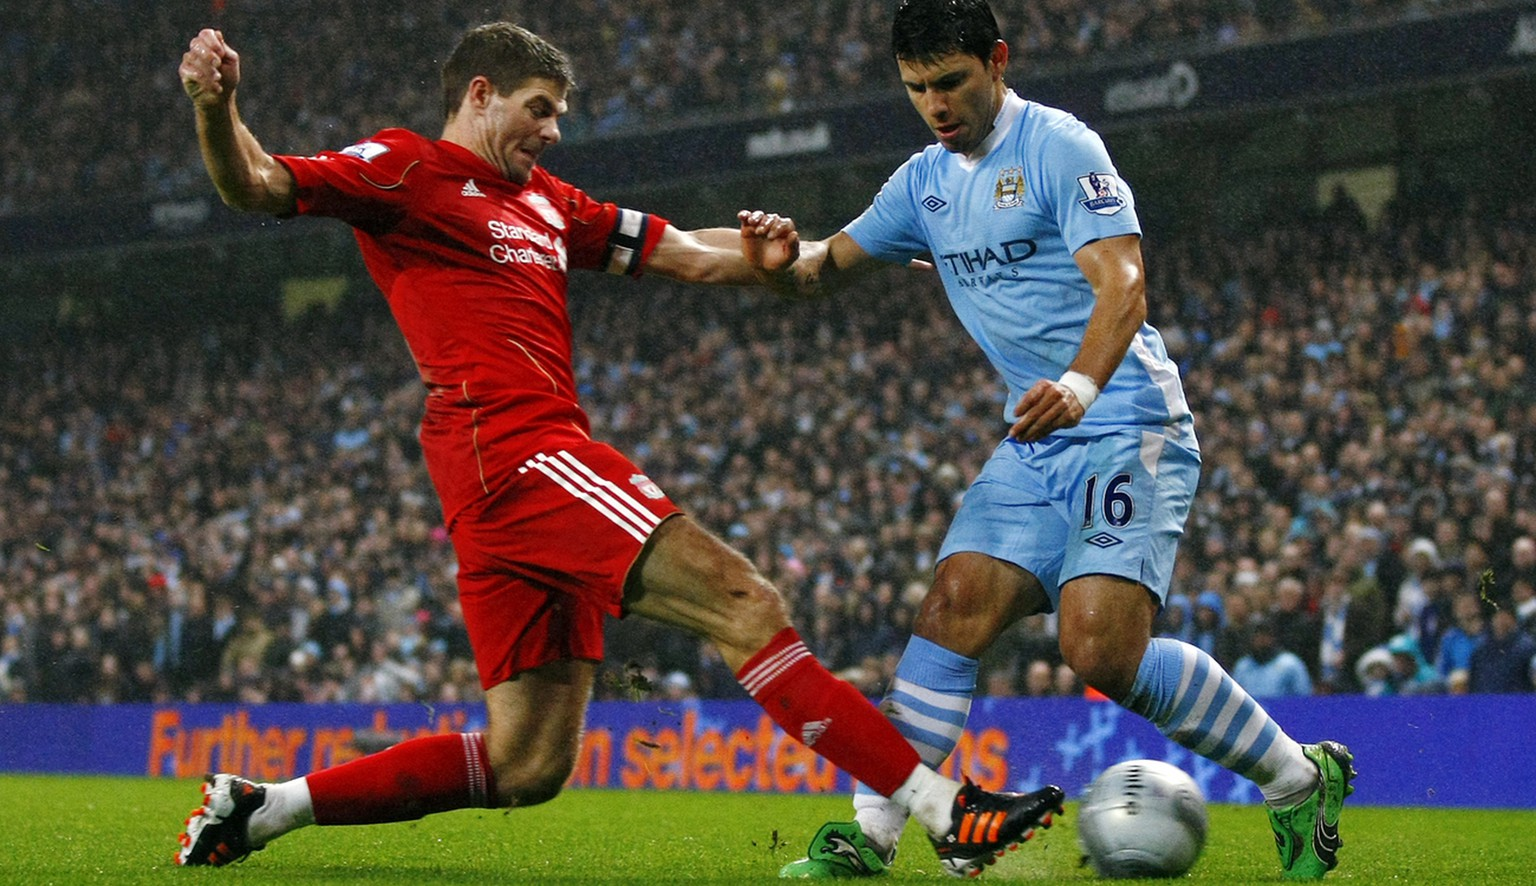 Manchester City's Sergio Aguero, right, vies for the ball against Liverpool's Steven Gerrard during the first leg of their English League Cup semi final soccer match at the Etihad Stadium, Manchester, England, Wednesday Jan. 11, 2012. (AP Photo/Tim Hales)